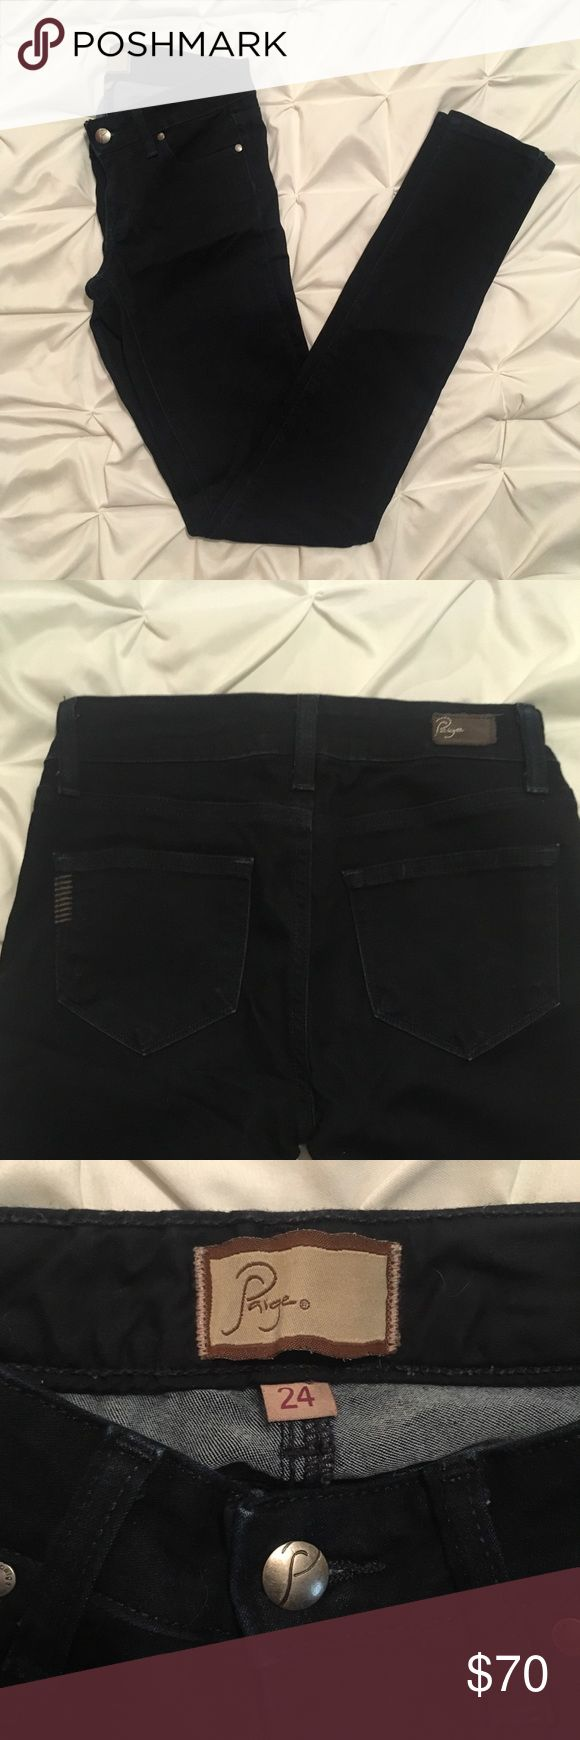 Paige Premium Denim •dark wash• never worn (I was overly confident these would fit me)• size 24 • has a good stretch in them• Paige Jeans Jeans Skinny